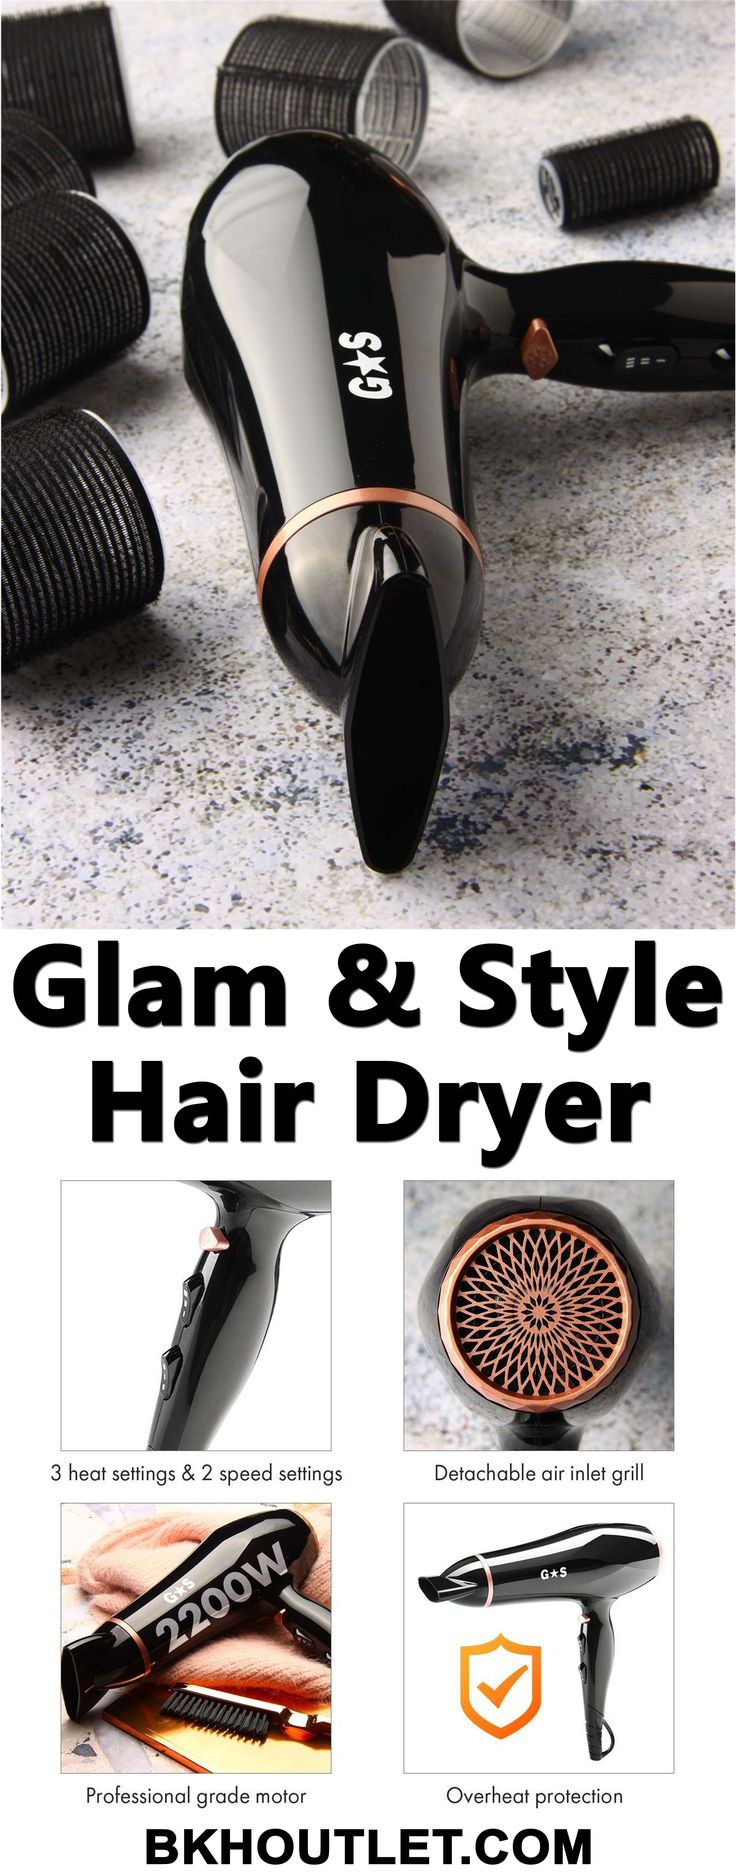 A HIGH-QUALITY HAIR STYLING BRAND AT AFFORDABLE PRICE All Glam & Style Products are inspired by professional hair styling salons. │hair care │hair care products │curl hair │curling wands │hair dryers │hair styles │hair removal │bkhoutlet │woman fashion #haircare #haircareproducts #curlhair #curlingwands #hairdryers #hairstyles #hairremoval #bkhoutlet #womanfashion